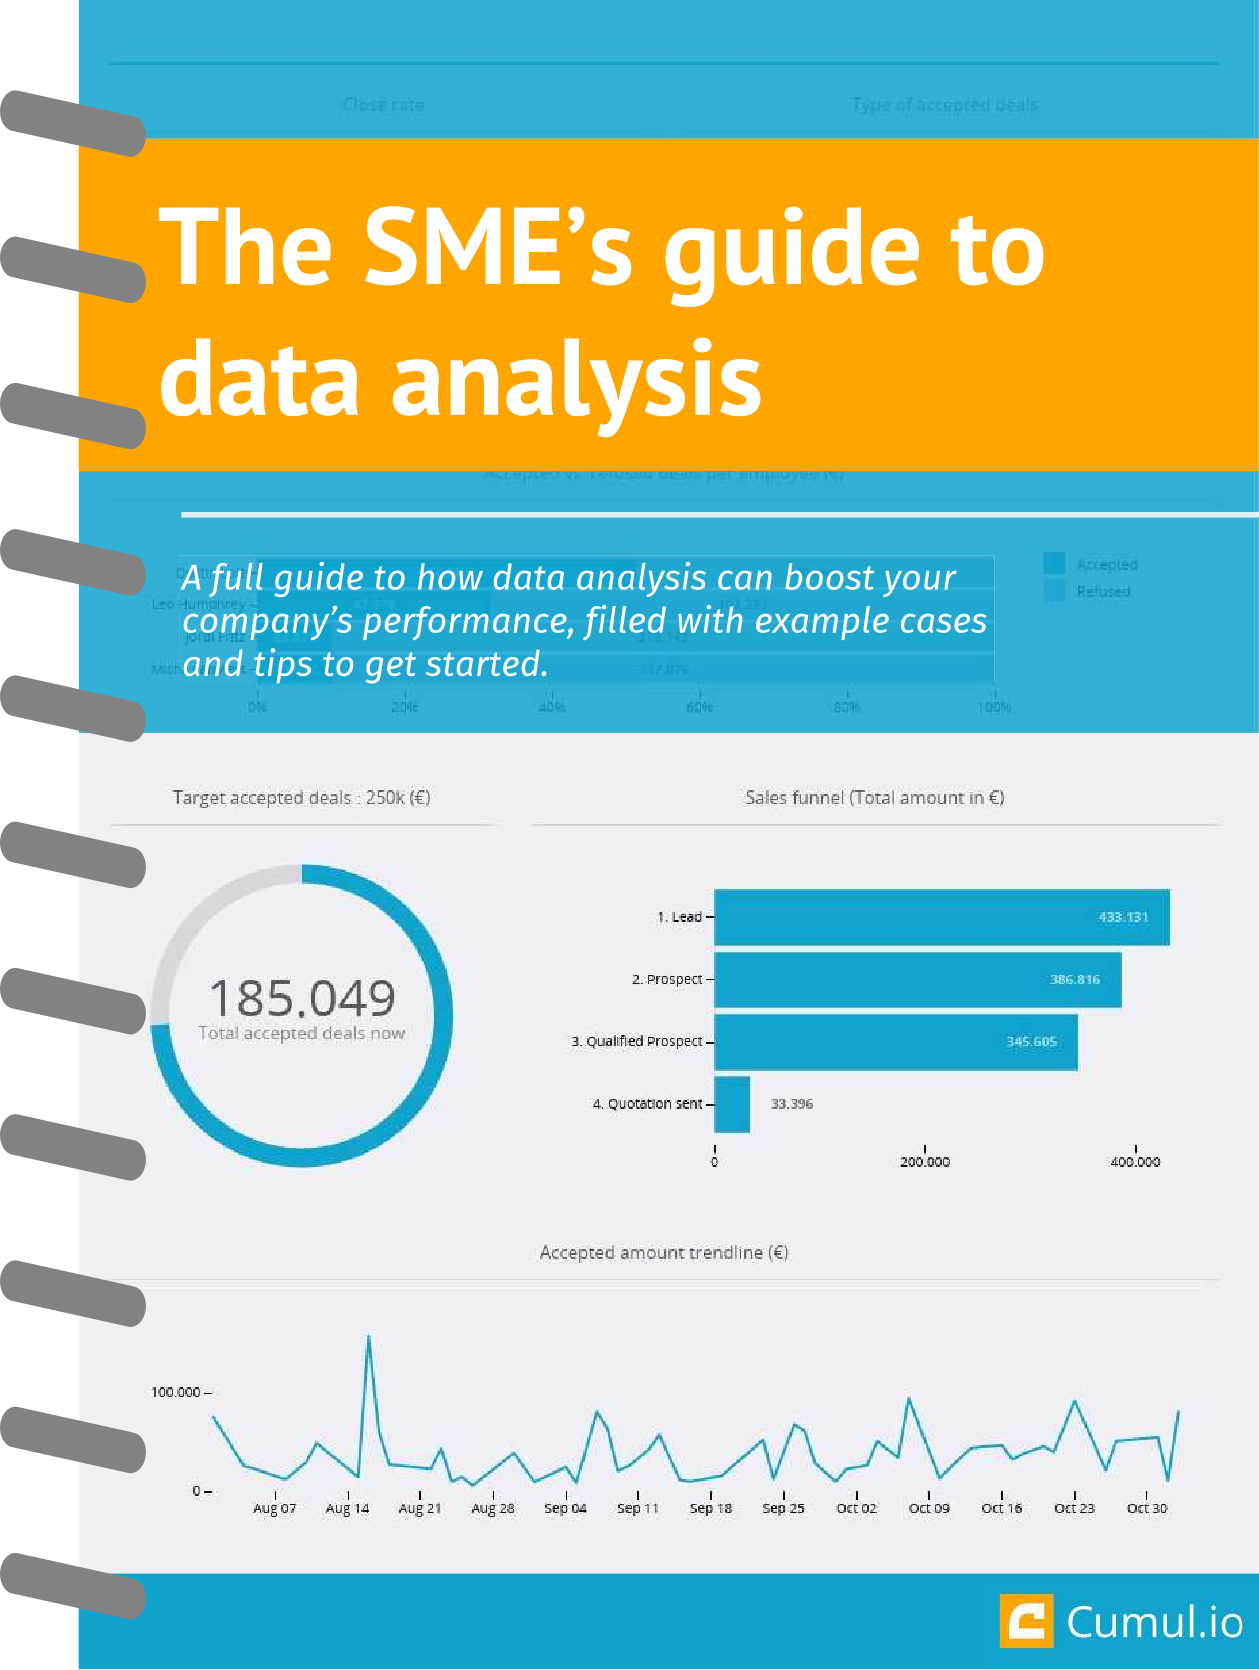 Whitepaper: The SME's guide to data analysis